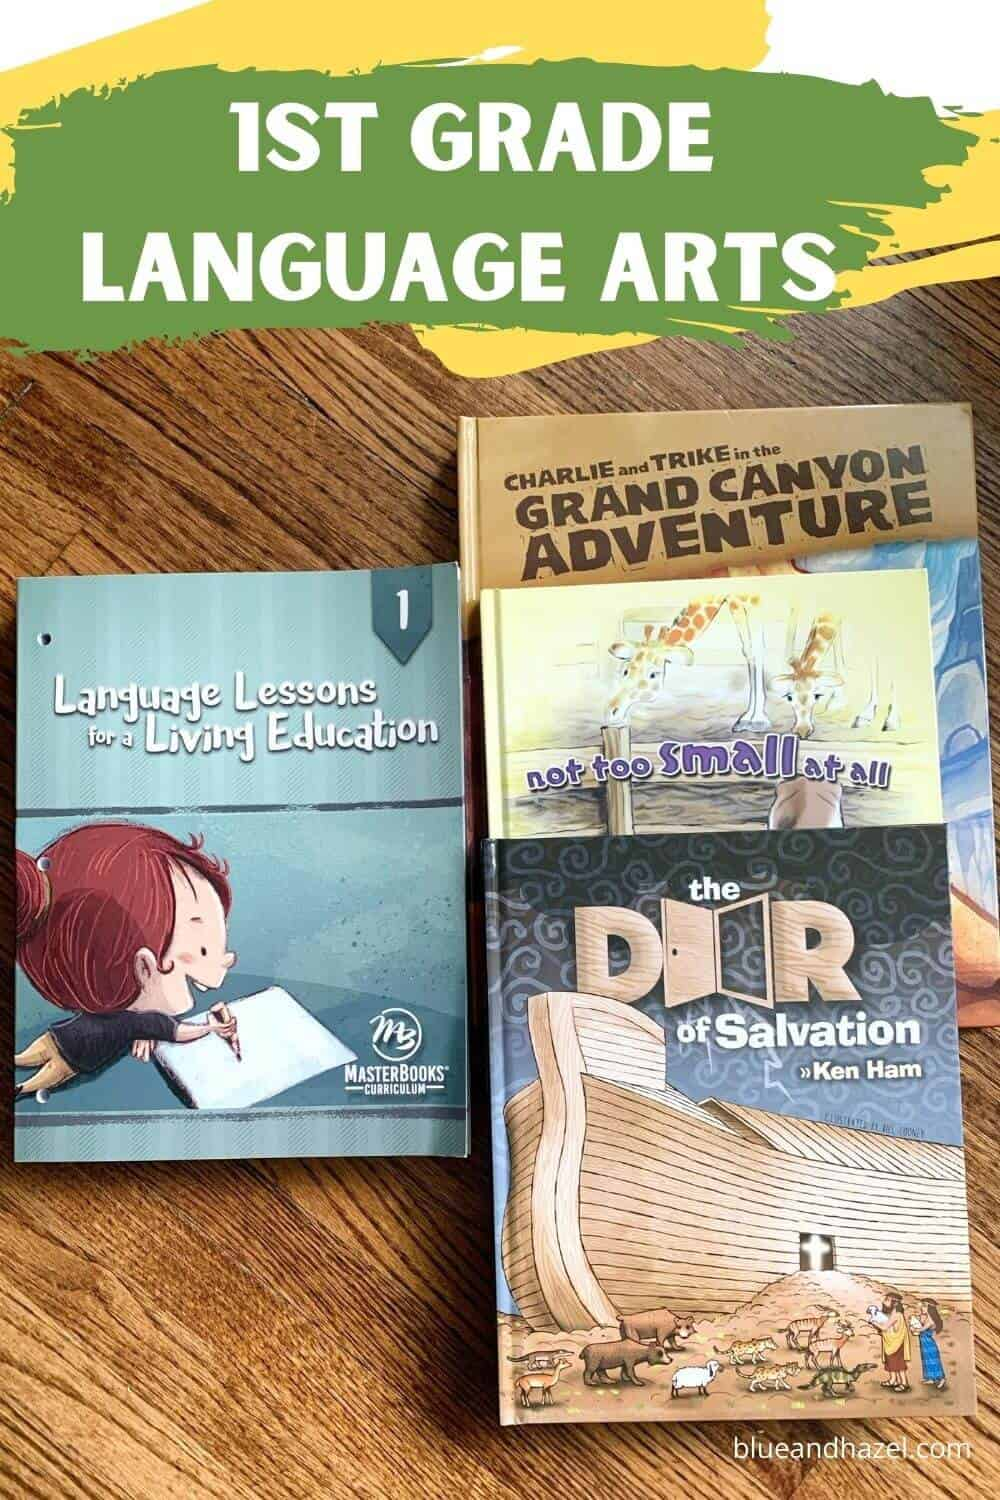 Our kindergarten and 1st grade homeschool curriculum includes  language lessons for a living education by masterbooks